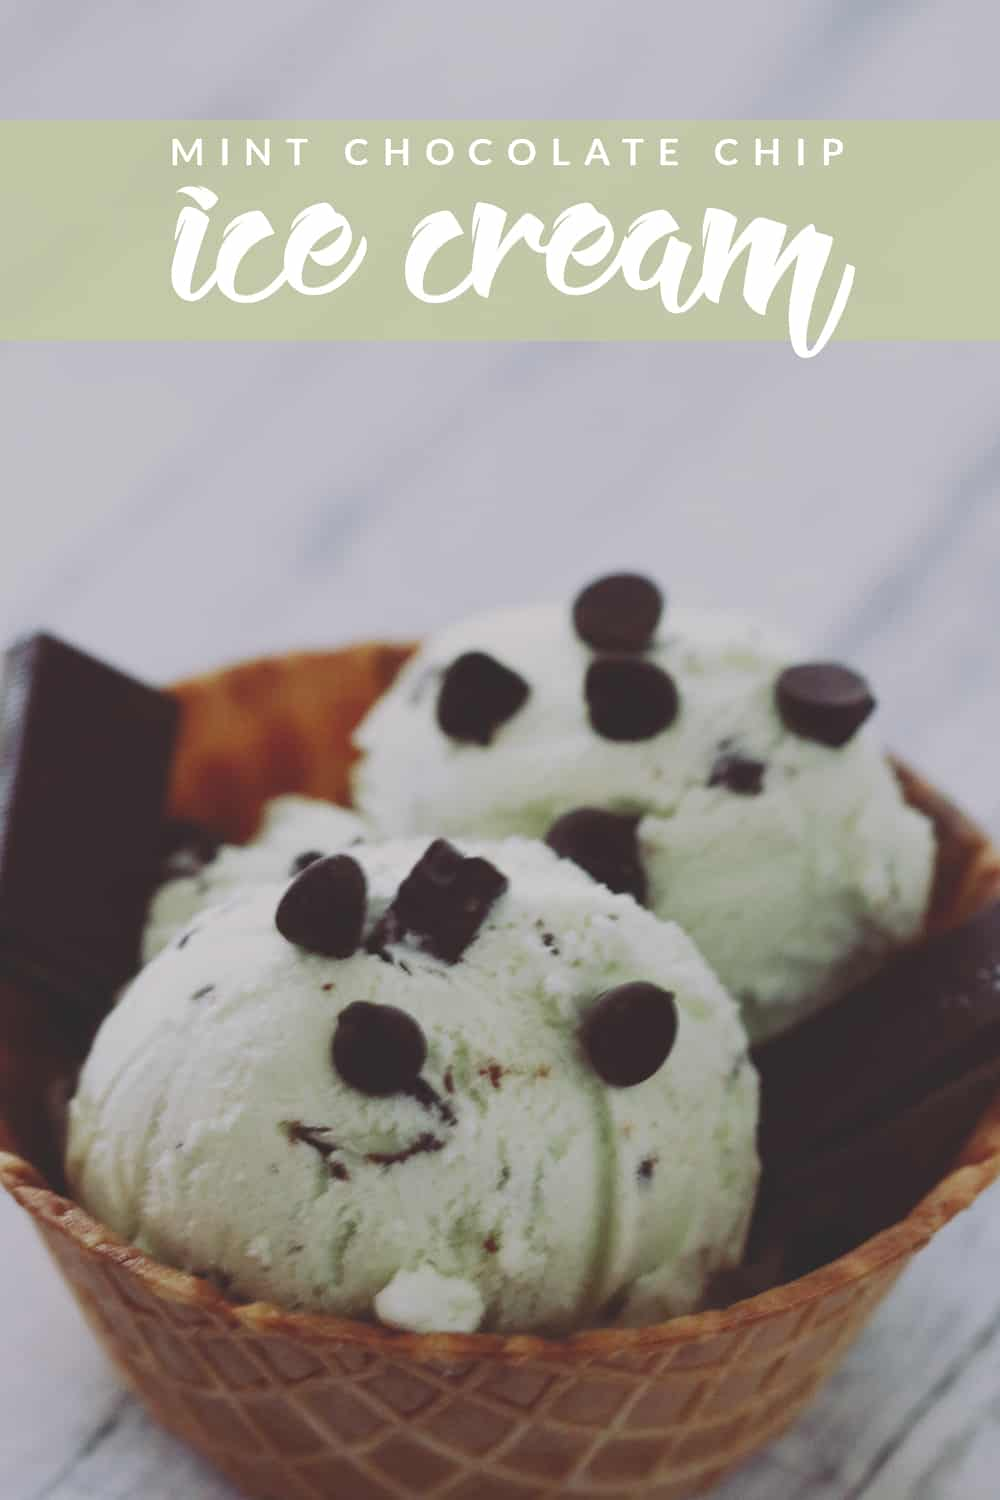 Makers mix up mint chocolate chip ice cream hello nature mint chocolate chip ice cream just got better this easy recipe is perfect to make ccuart